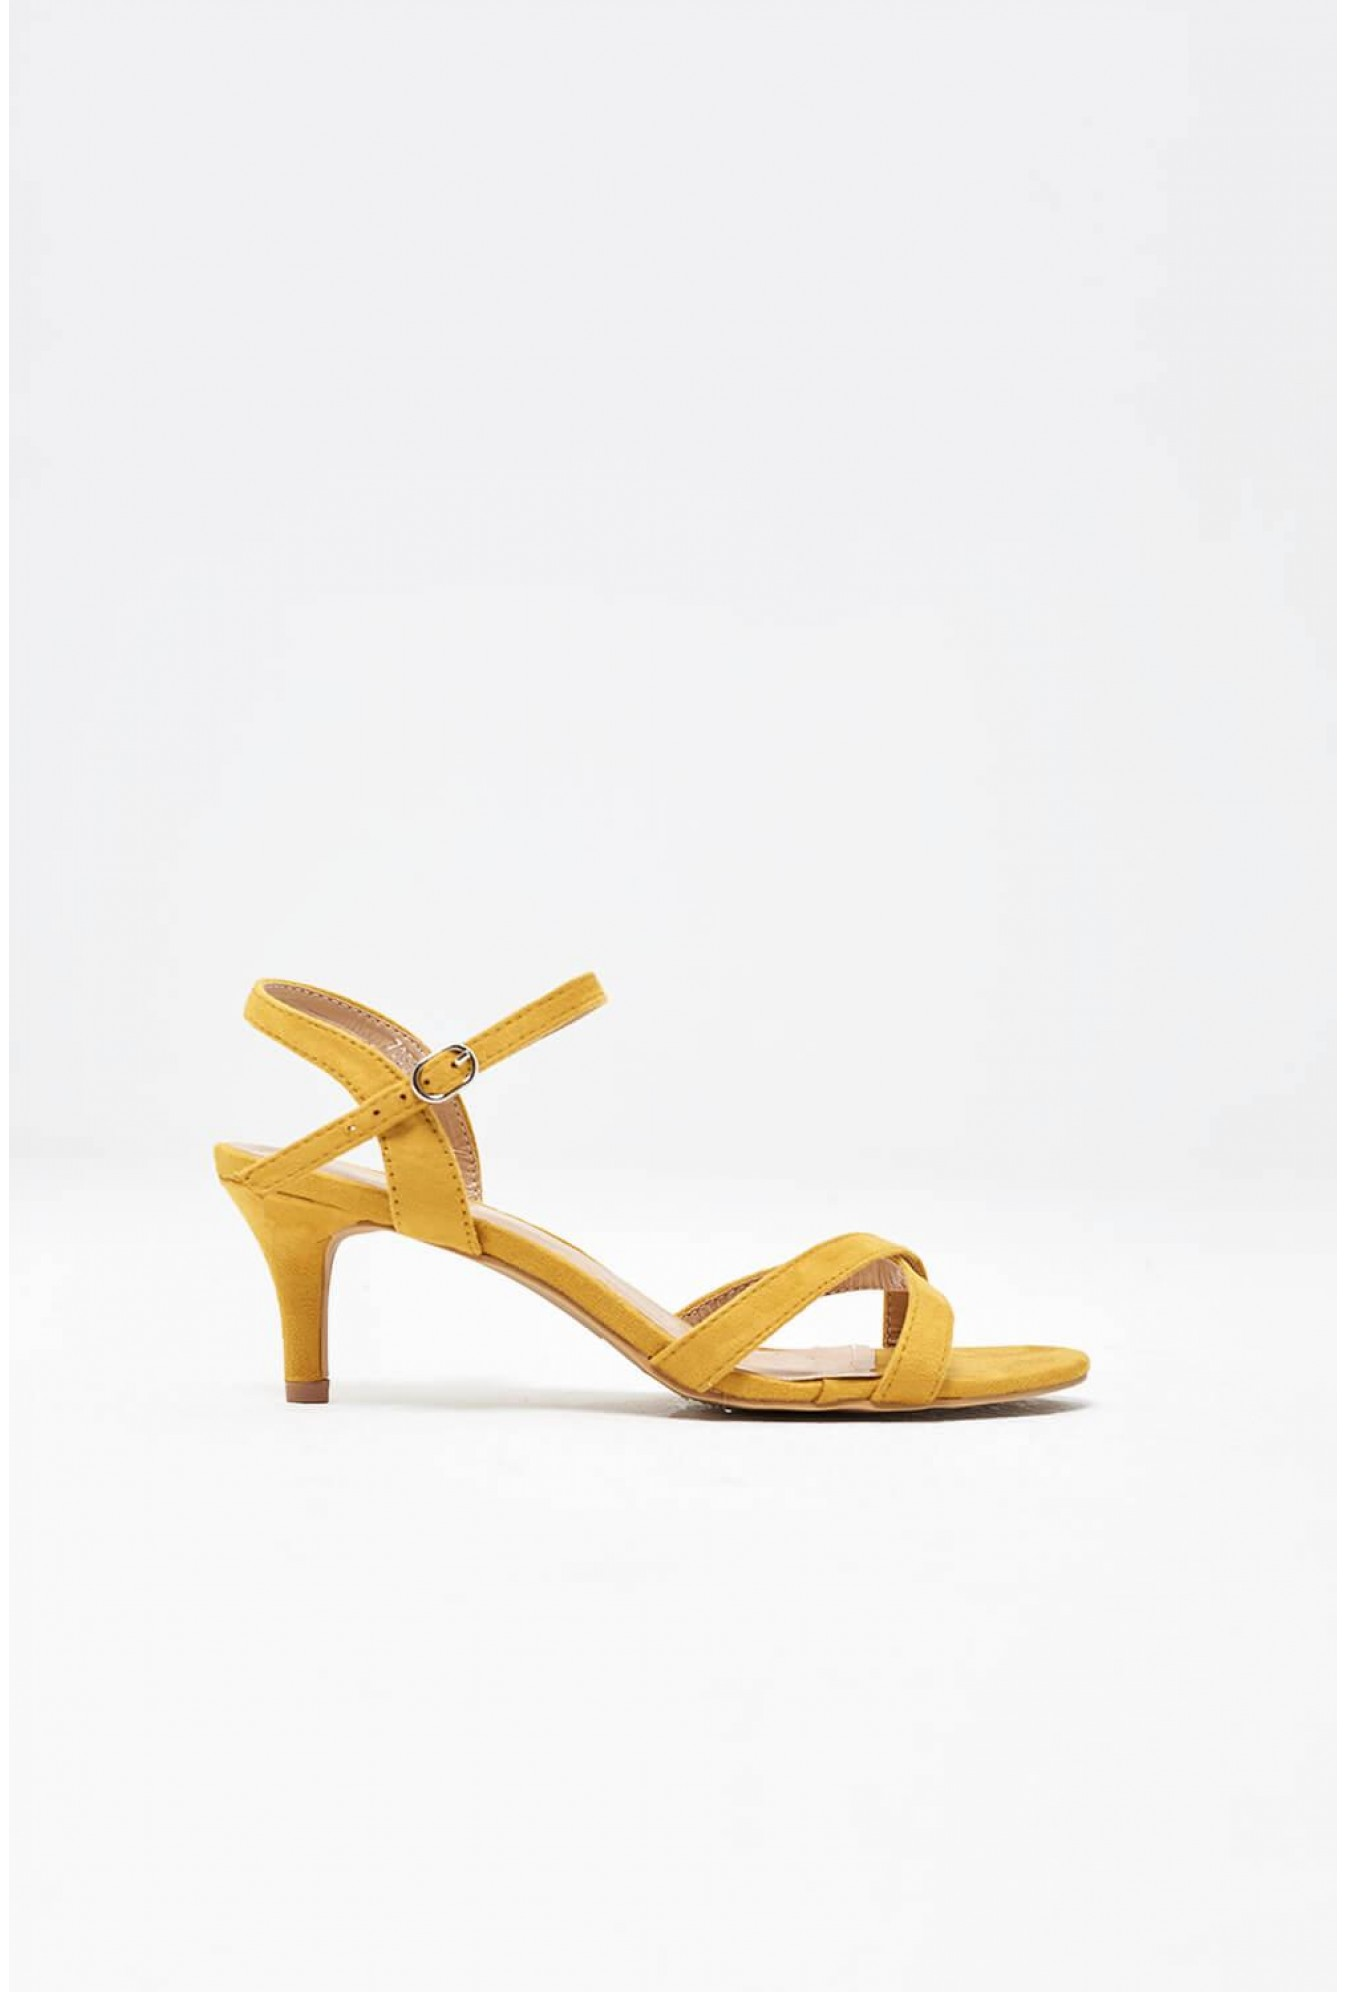 792a1ba25 More Views. Ami Kitten Heel Sandals in Yellow Suede